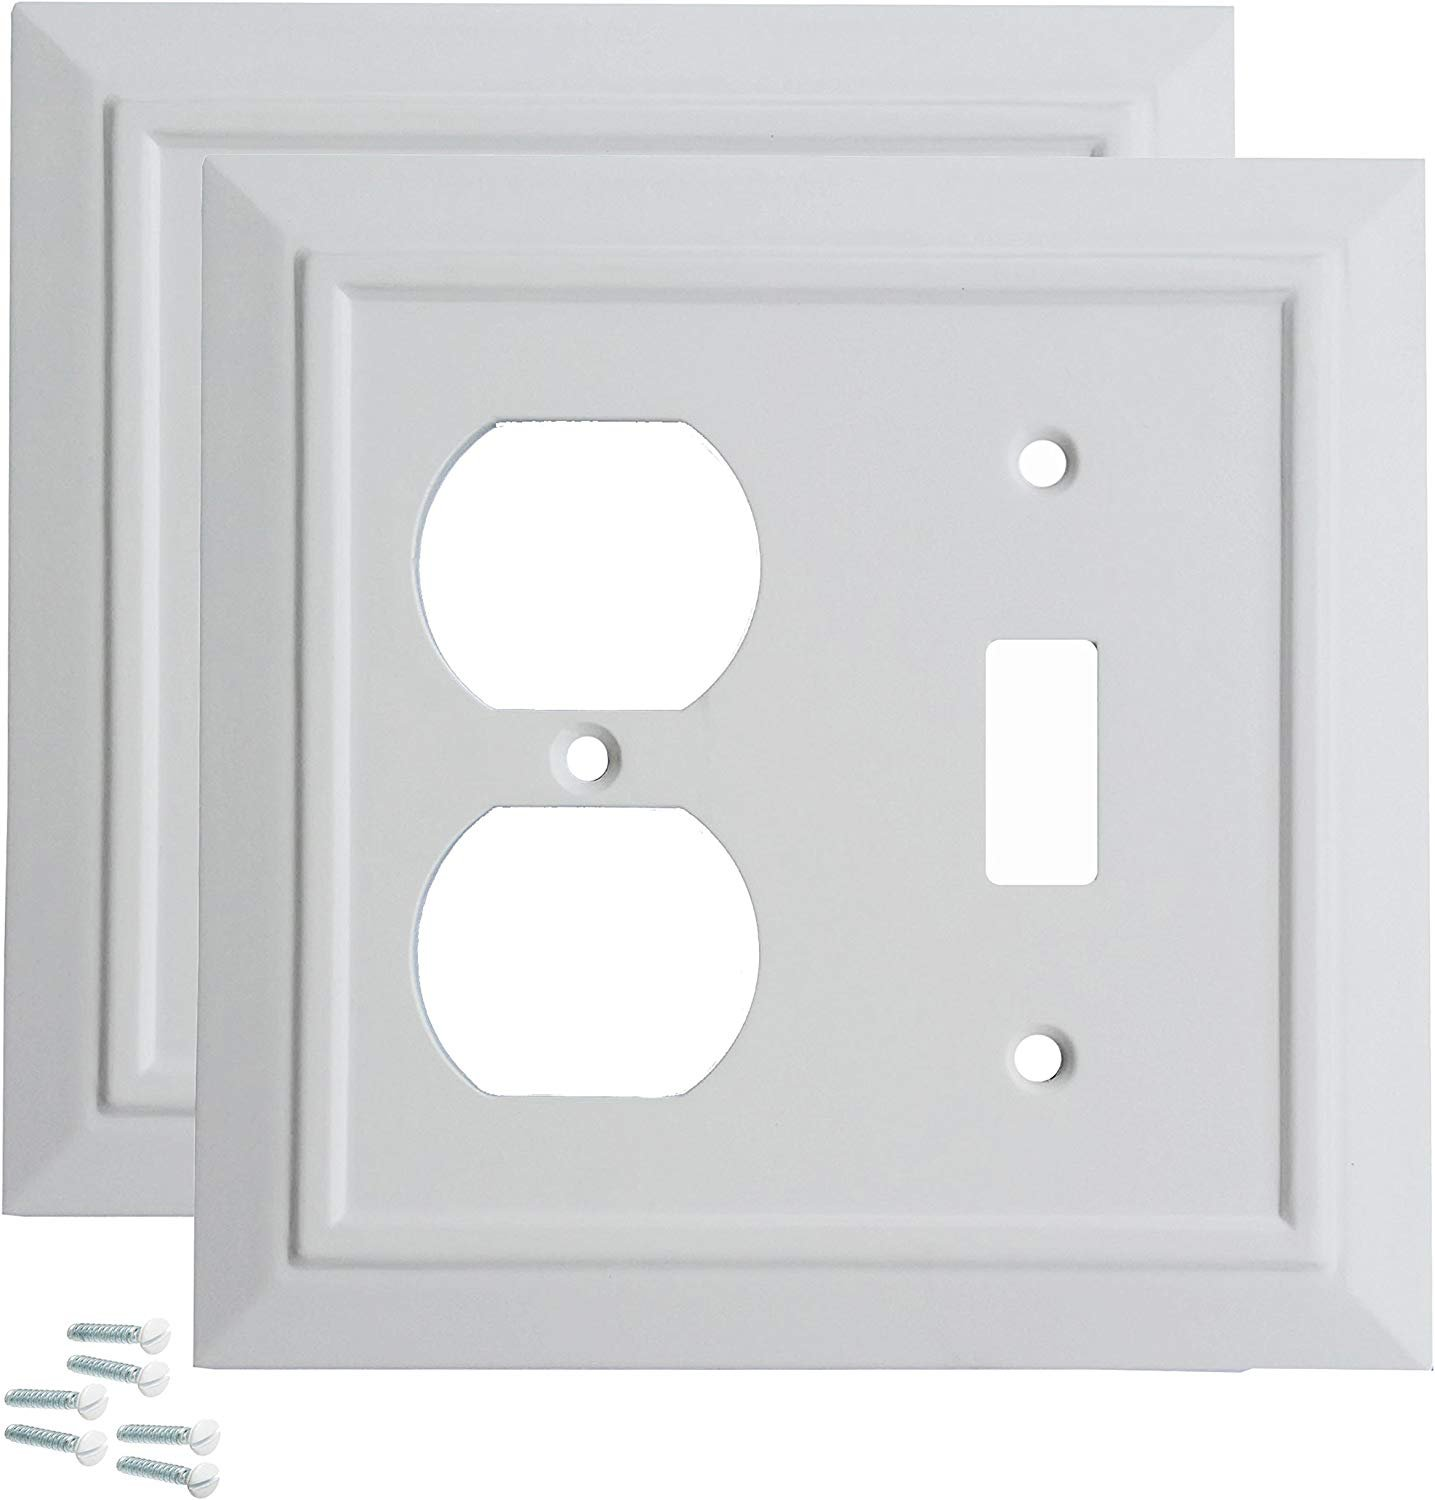 Pack Of 2 Wall Plate Outlet Switch Covers By Sleeklighting Classic Architecture Wall Plates Variety Of Styles Rocker Receptacle Toggle Combo Size 2 Gang Toggle And Receptacle Walmart Com Walmart Com